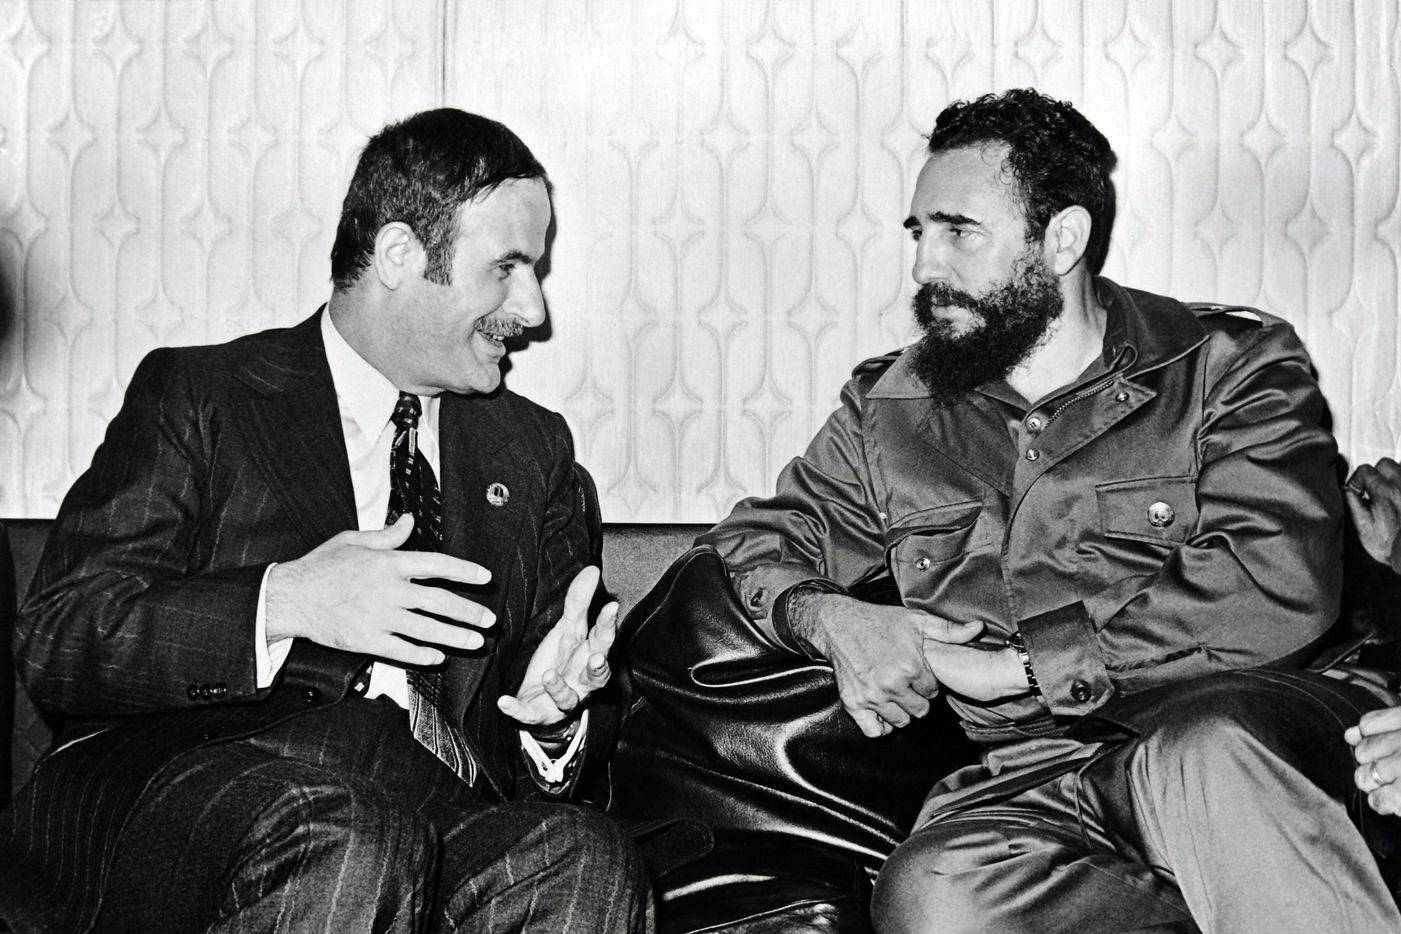 Syrian President Hafez al-Assad (L) speaking with then Cuban leader Fidel Castro during a meeting in Damascus September 9, 1973.